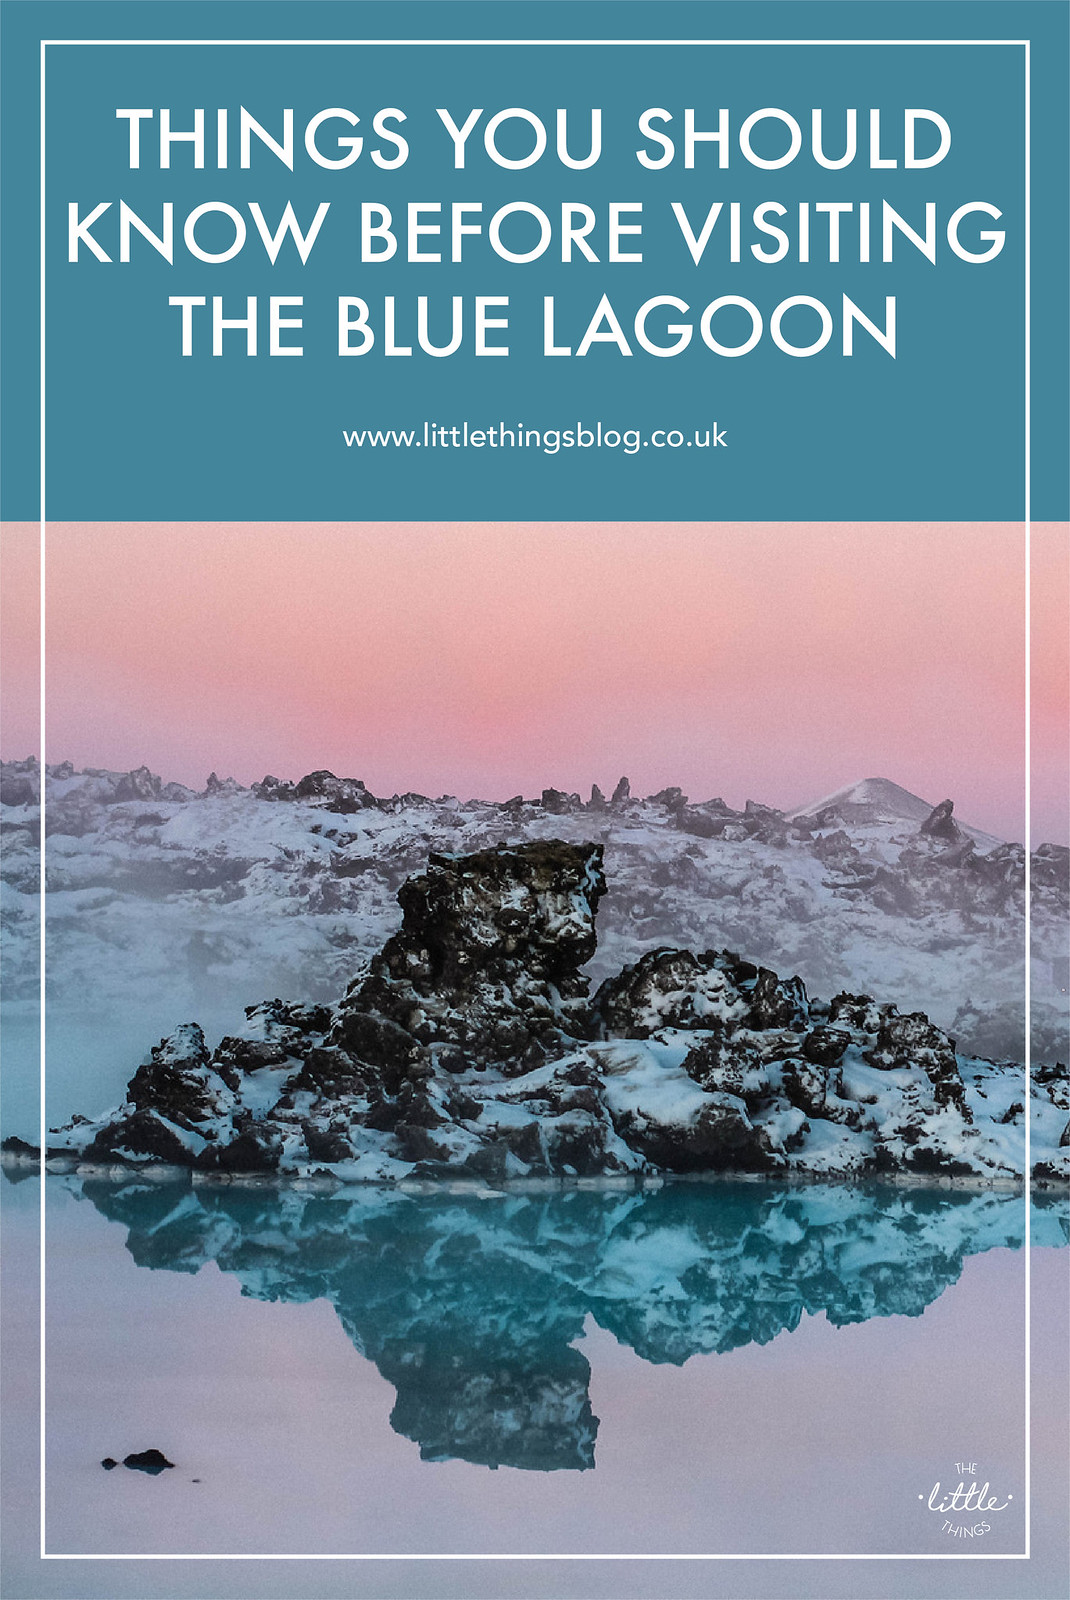 Things you should know before visiting the Blue Lagoon, Iceland